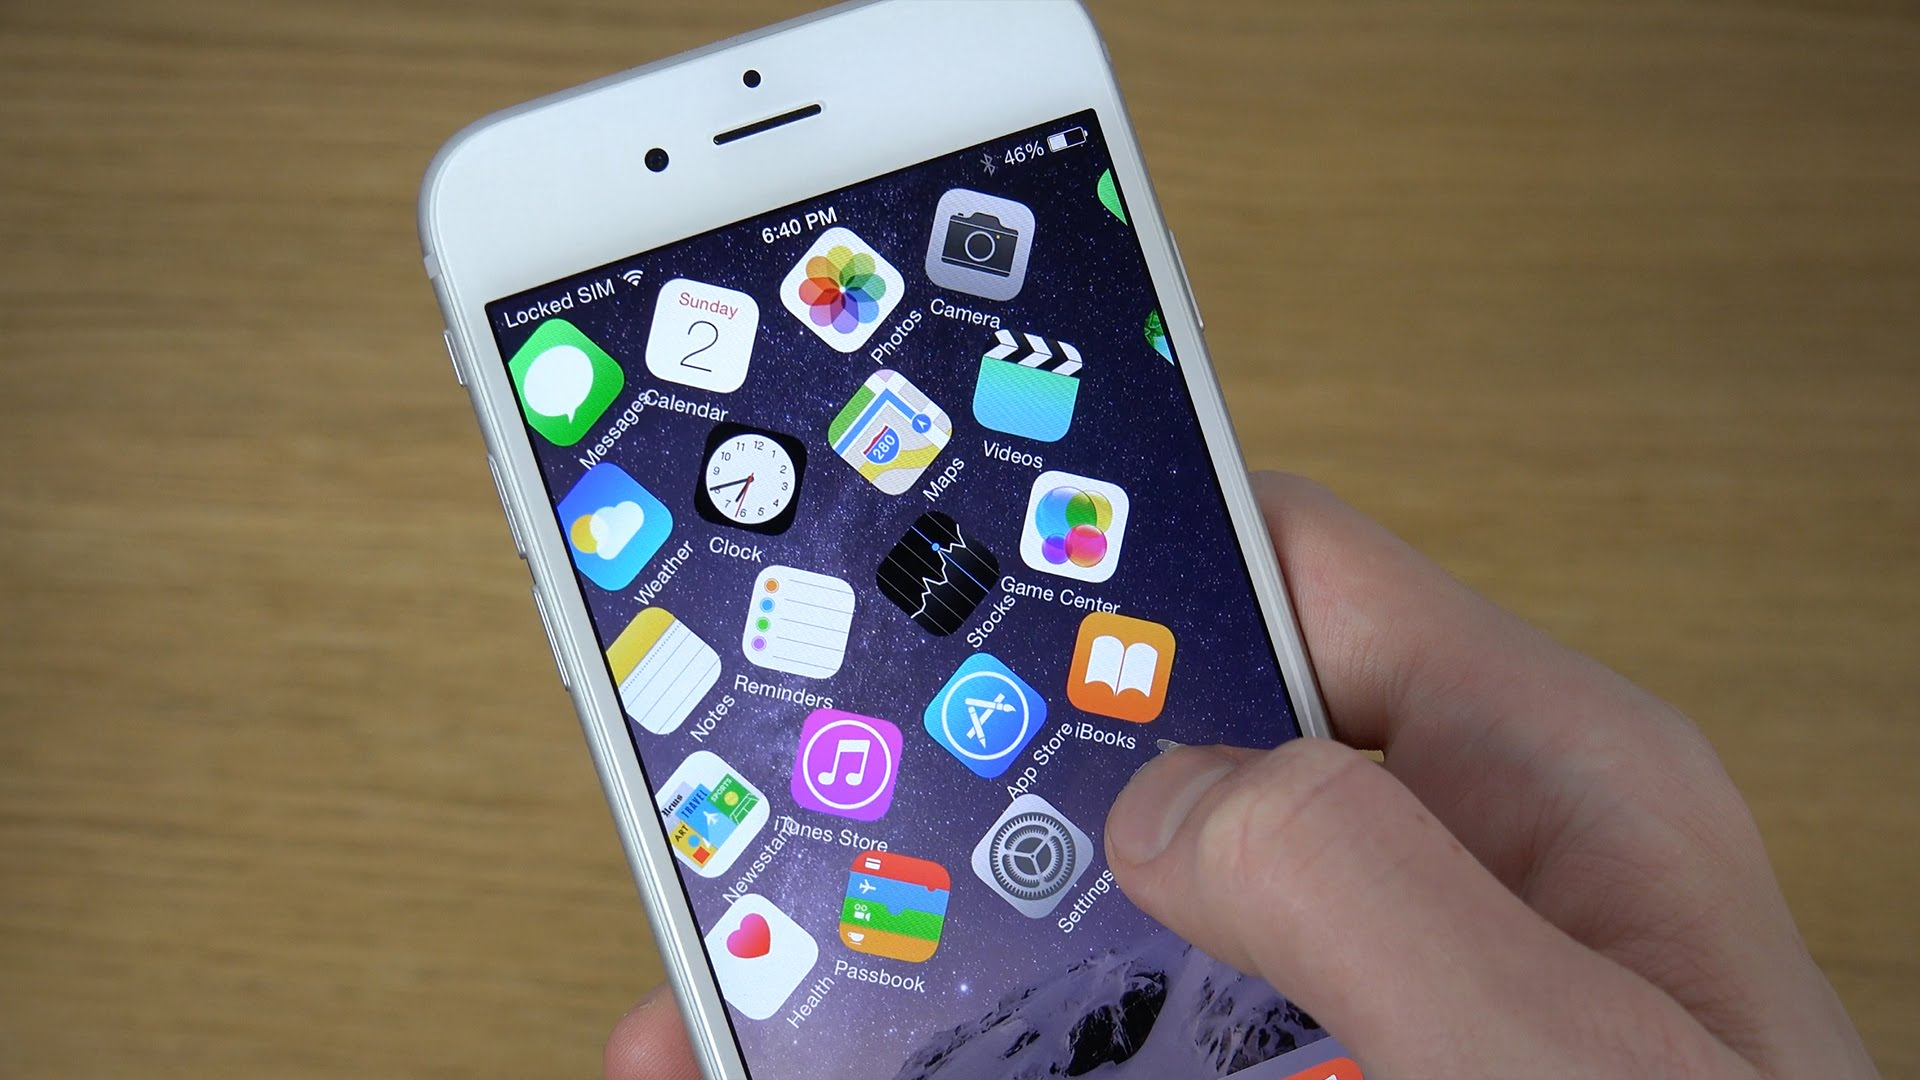 The BEST Jailbreak tweaks compatible with iOS 9, 10, and 11!